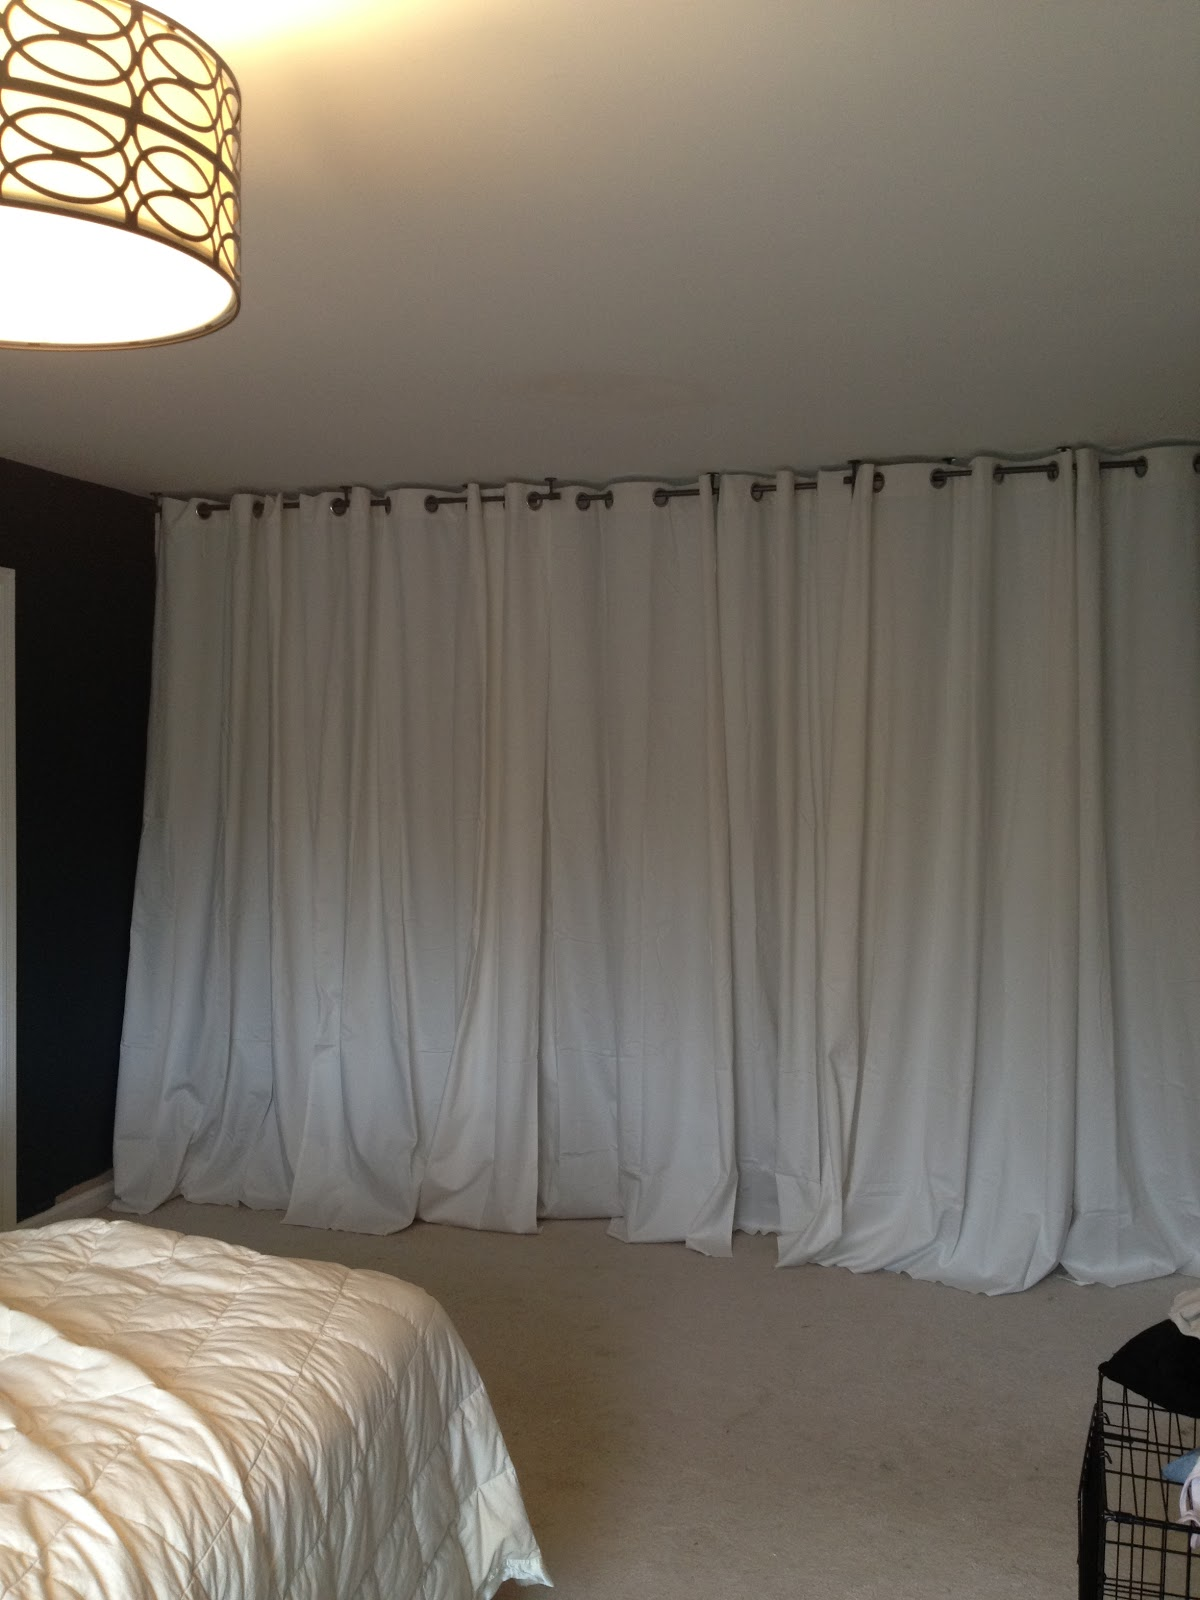 Genial Diy Curtain Room Divider